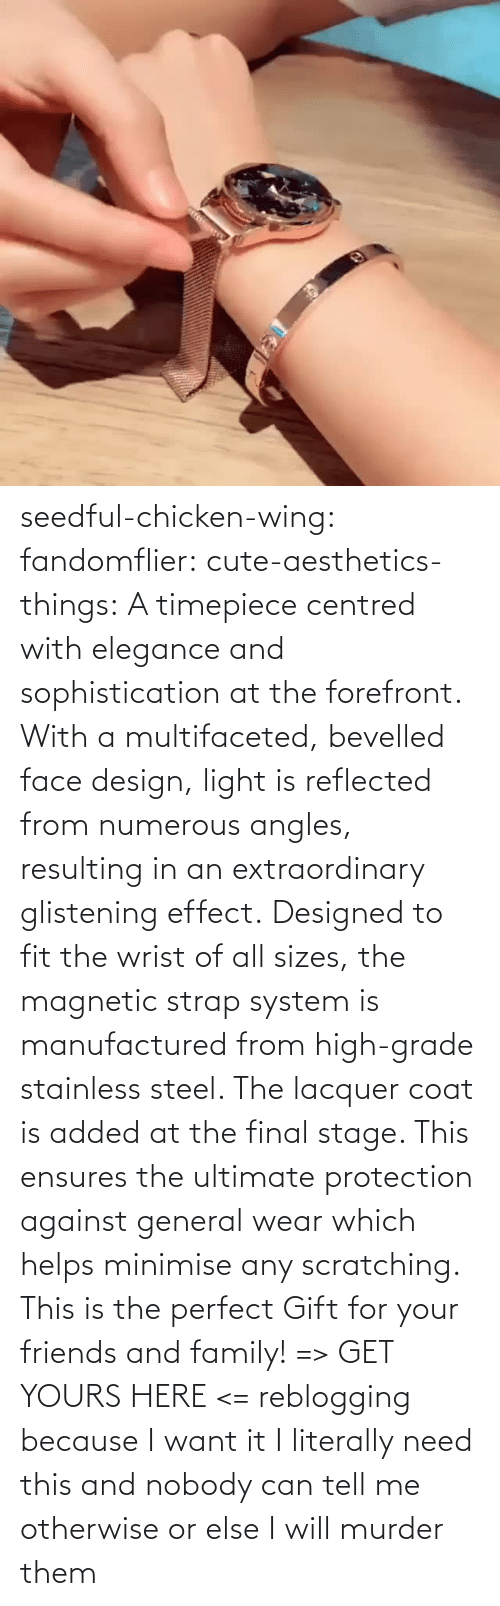 Friends And Family: seedful-chicken-wing: fandomflier:  cute-aesthetics-things:   A timepiece centred with elegance and sophistication at the forefront. With a multifaceted, bevelled face design, light is reflected from numerous angles, resulting in an extraordinary glistening effect. Designed to fit the wrist of all sizes, the magnetic strap system is manufactured from high-grade stainless steel. The lacquer coat is added at the final stage. This ensures the ultimate protection against general wear which helps minimise any scratching. This is the perfect Gift for your friends and family! => GET YOURS HERE <=   reblogging because I want it  I literally need this and nobody can tell me otherwise or else I will murder them